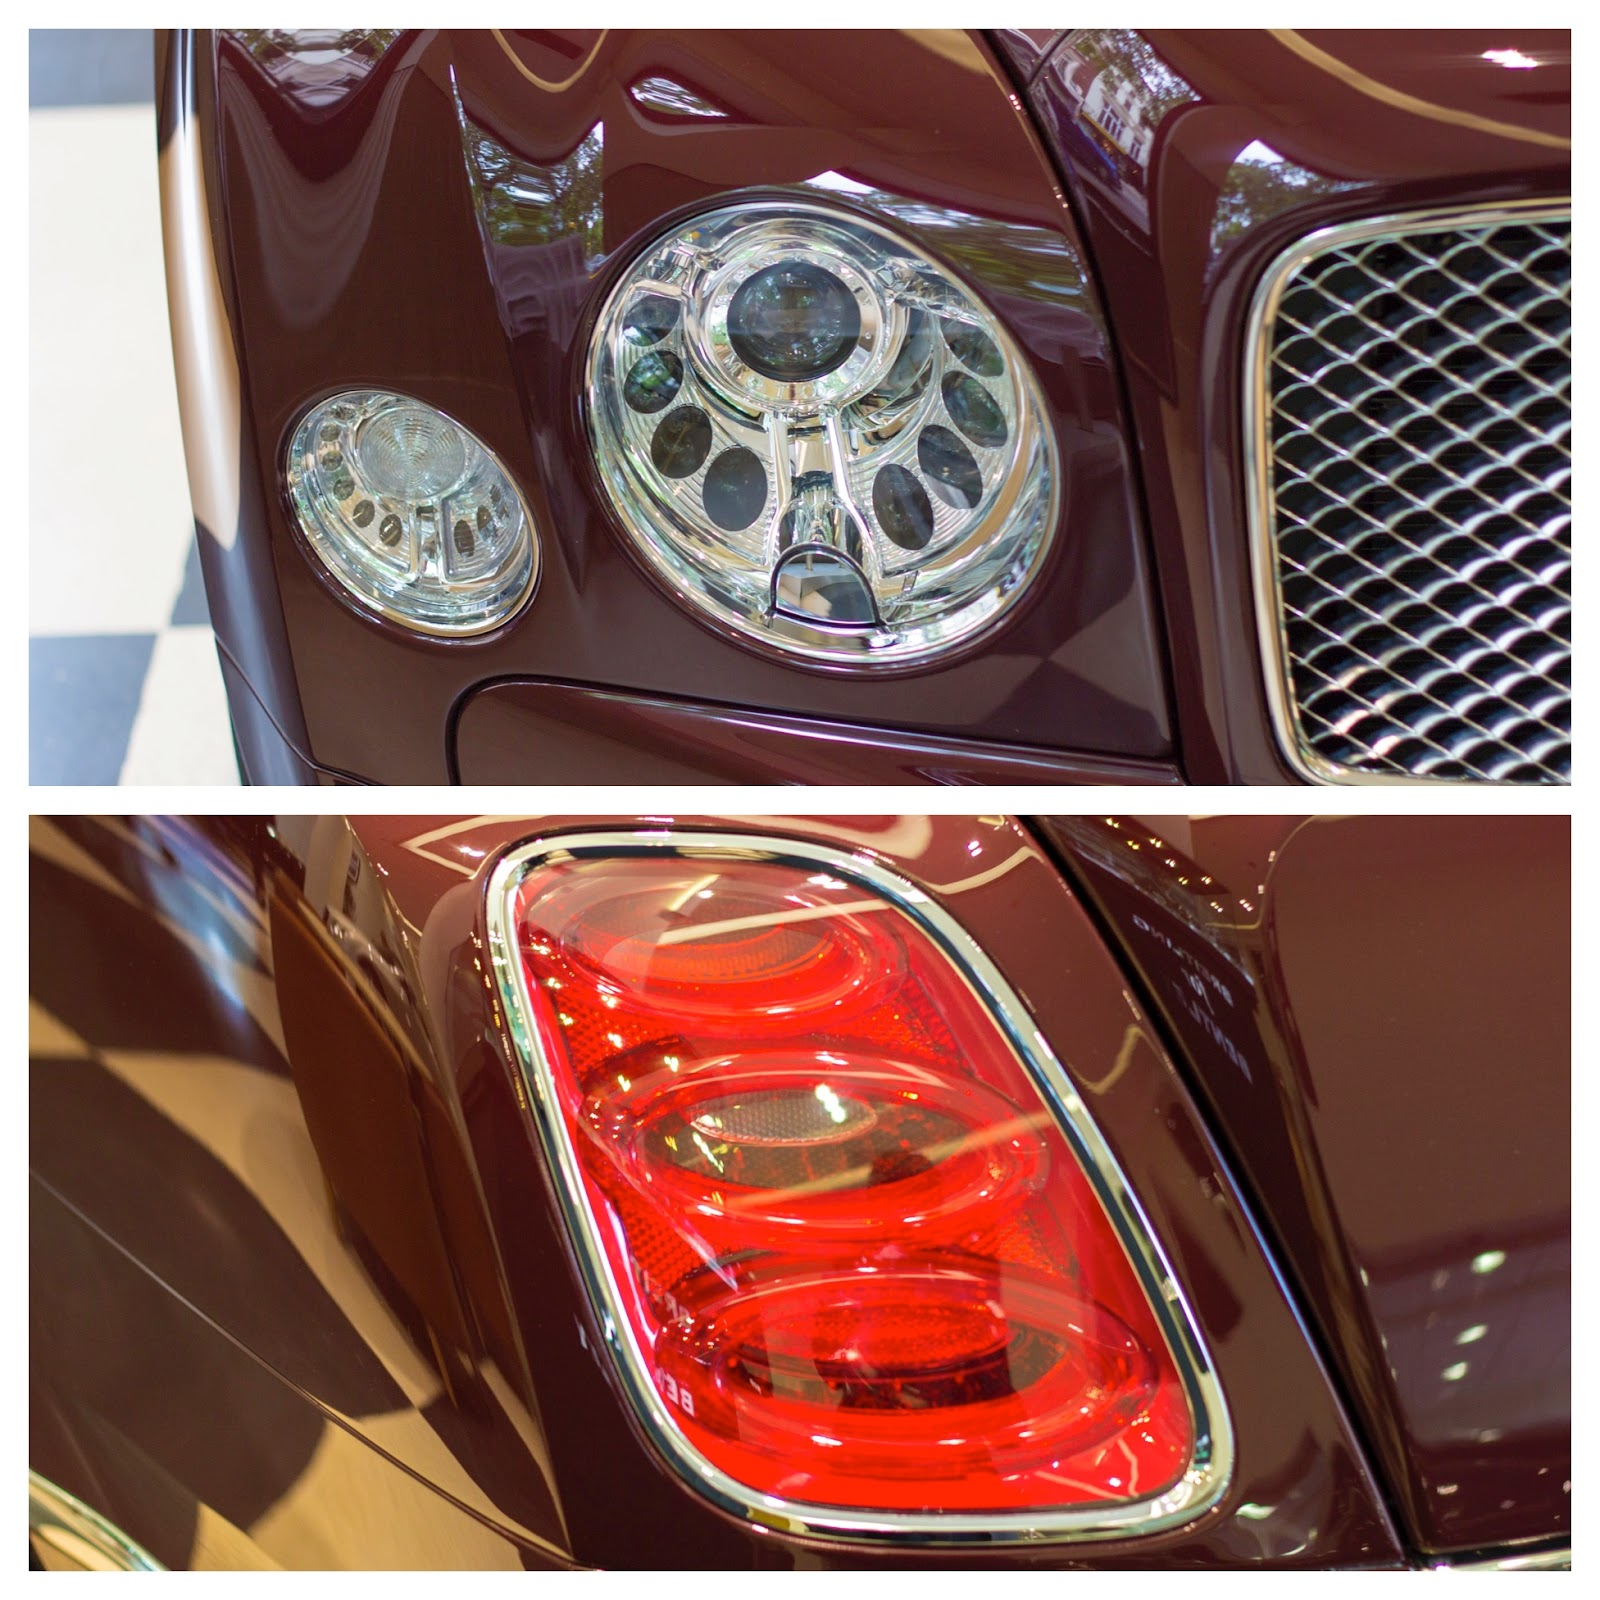 Bentley Mulsanne from Jack Barclay London